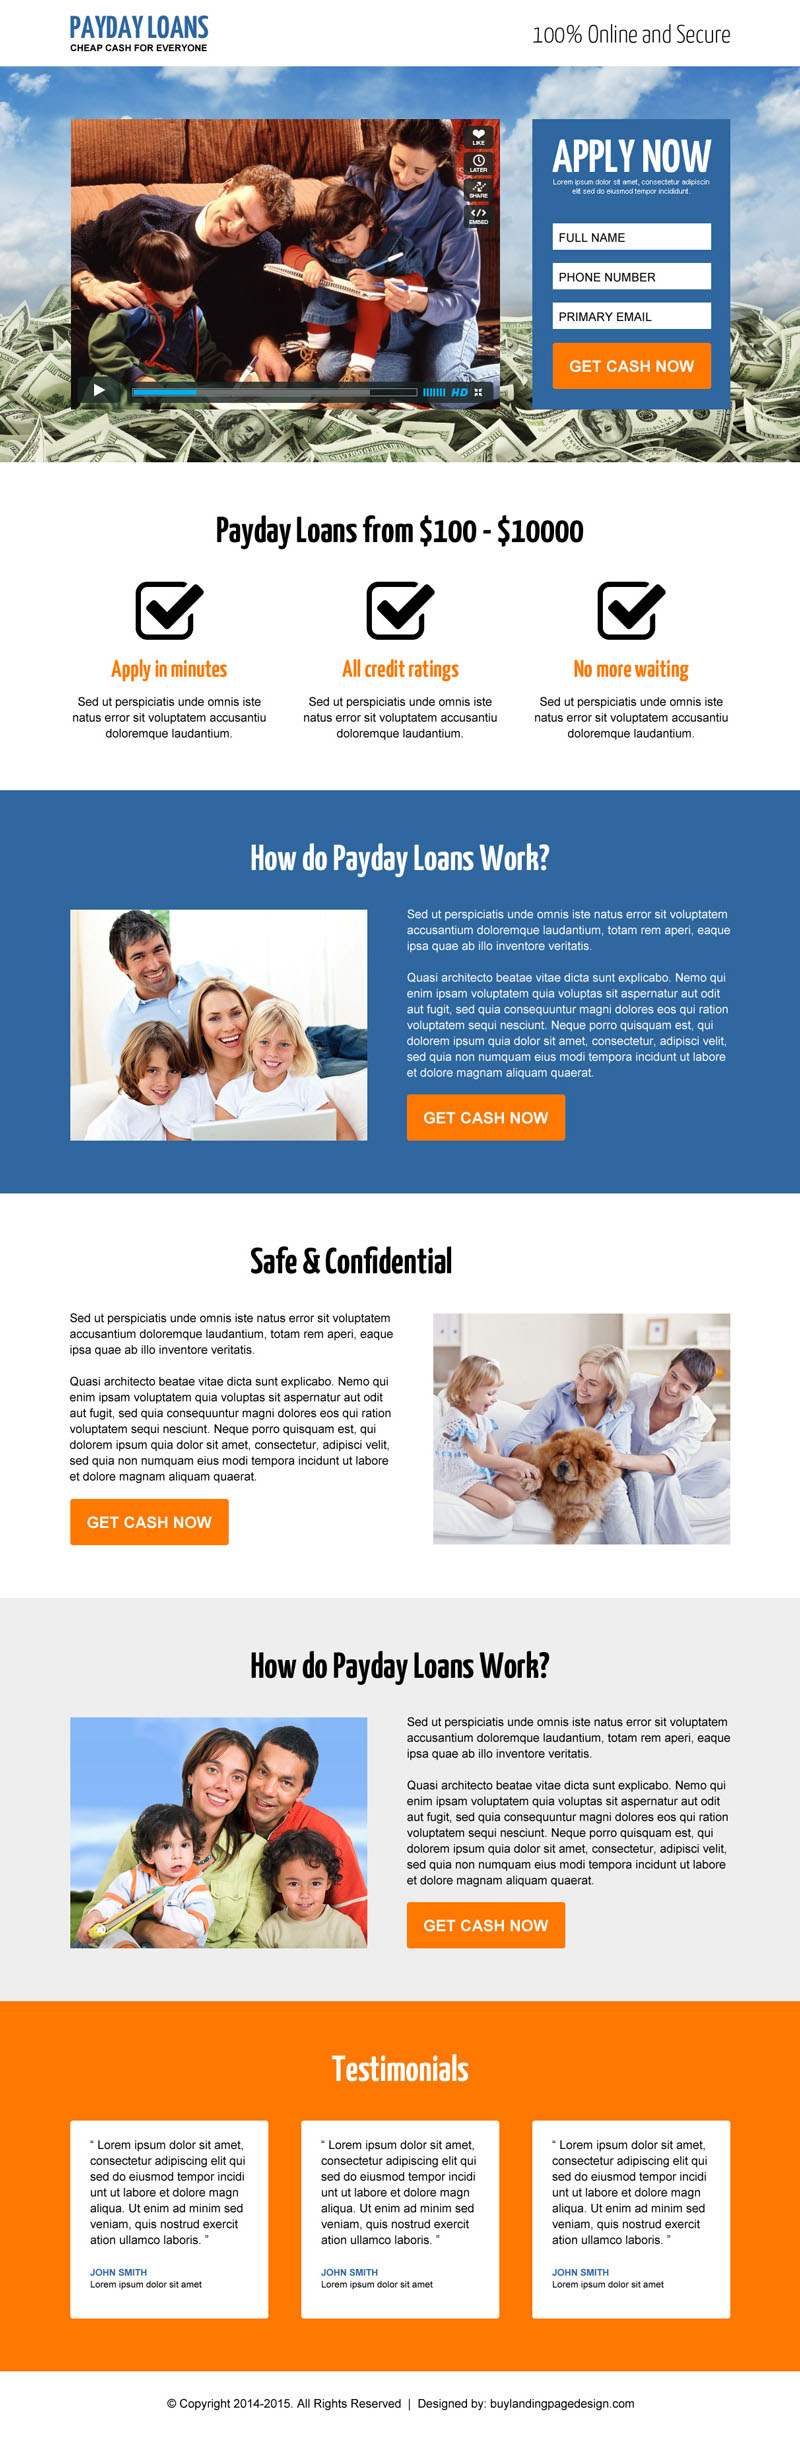 best-payday-loan-responsive-video-landing-page-design-template-to-capture-lead-and-increase-sales-015